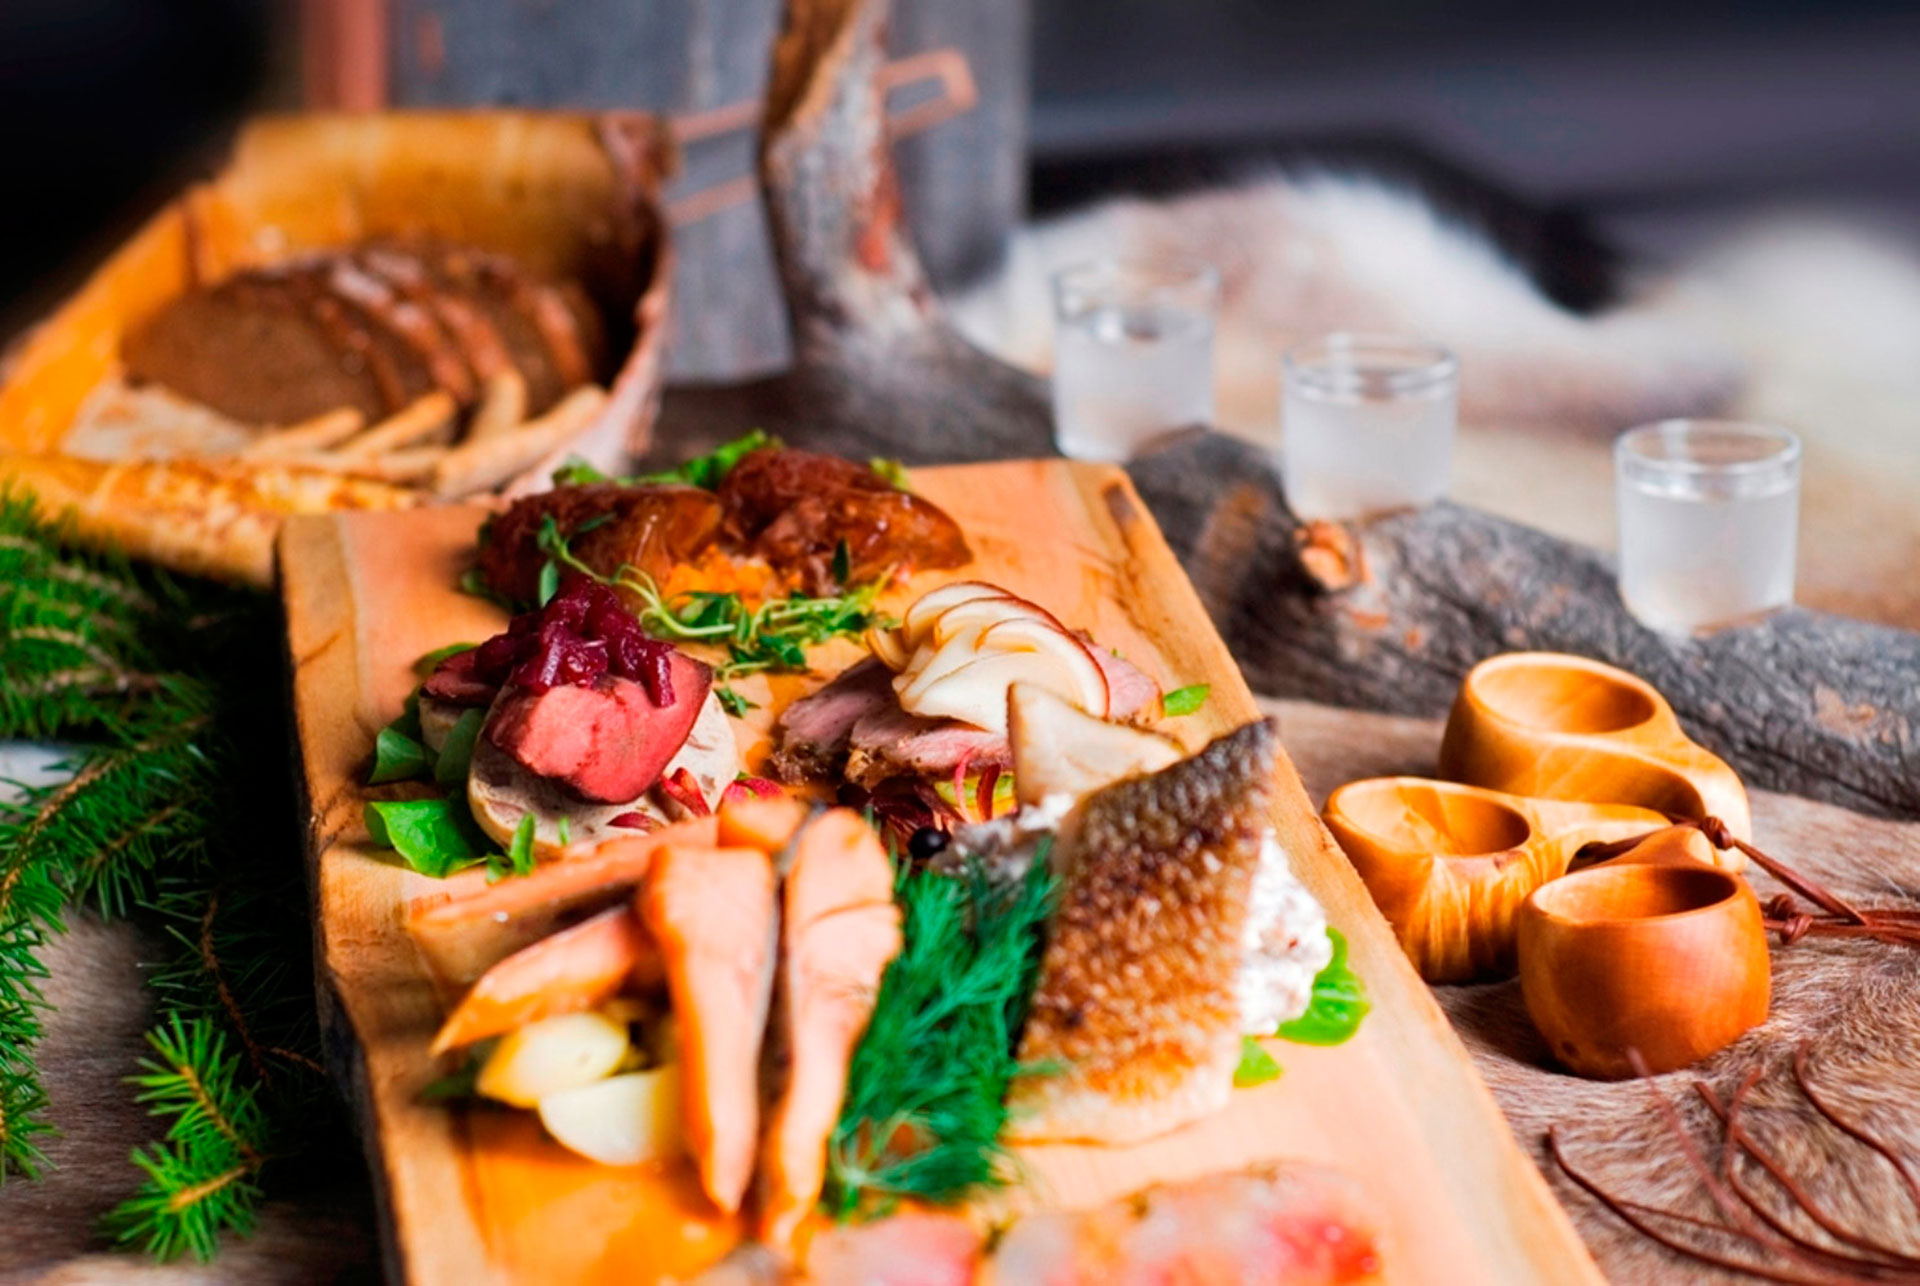 A tasty platter of local food in Rovaniemi, Lapland, Finland